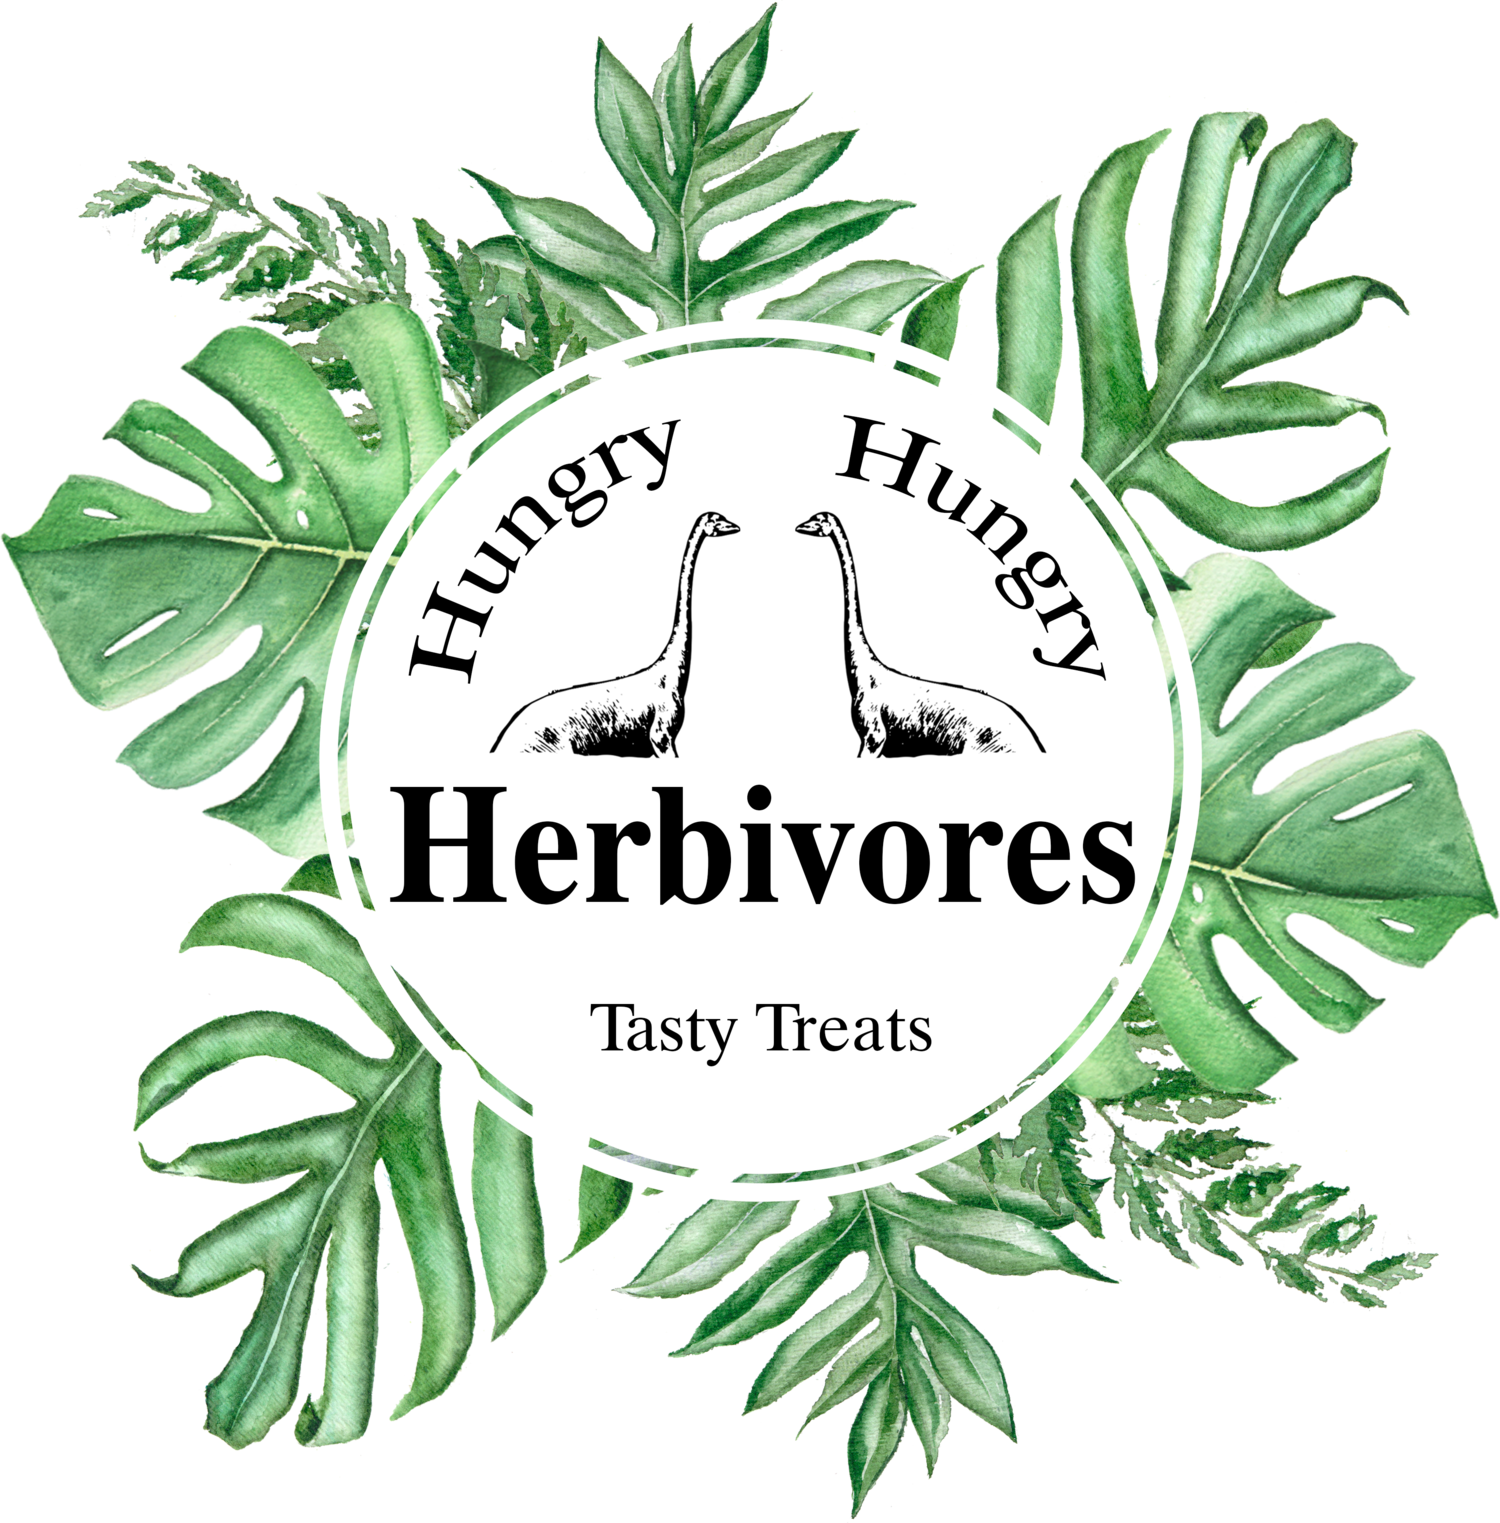 Hungry Hungry Herbivores